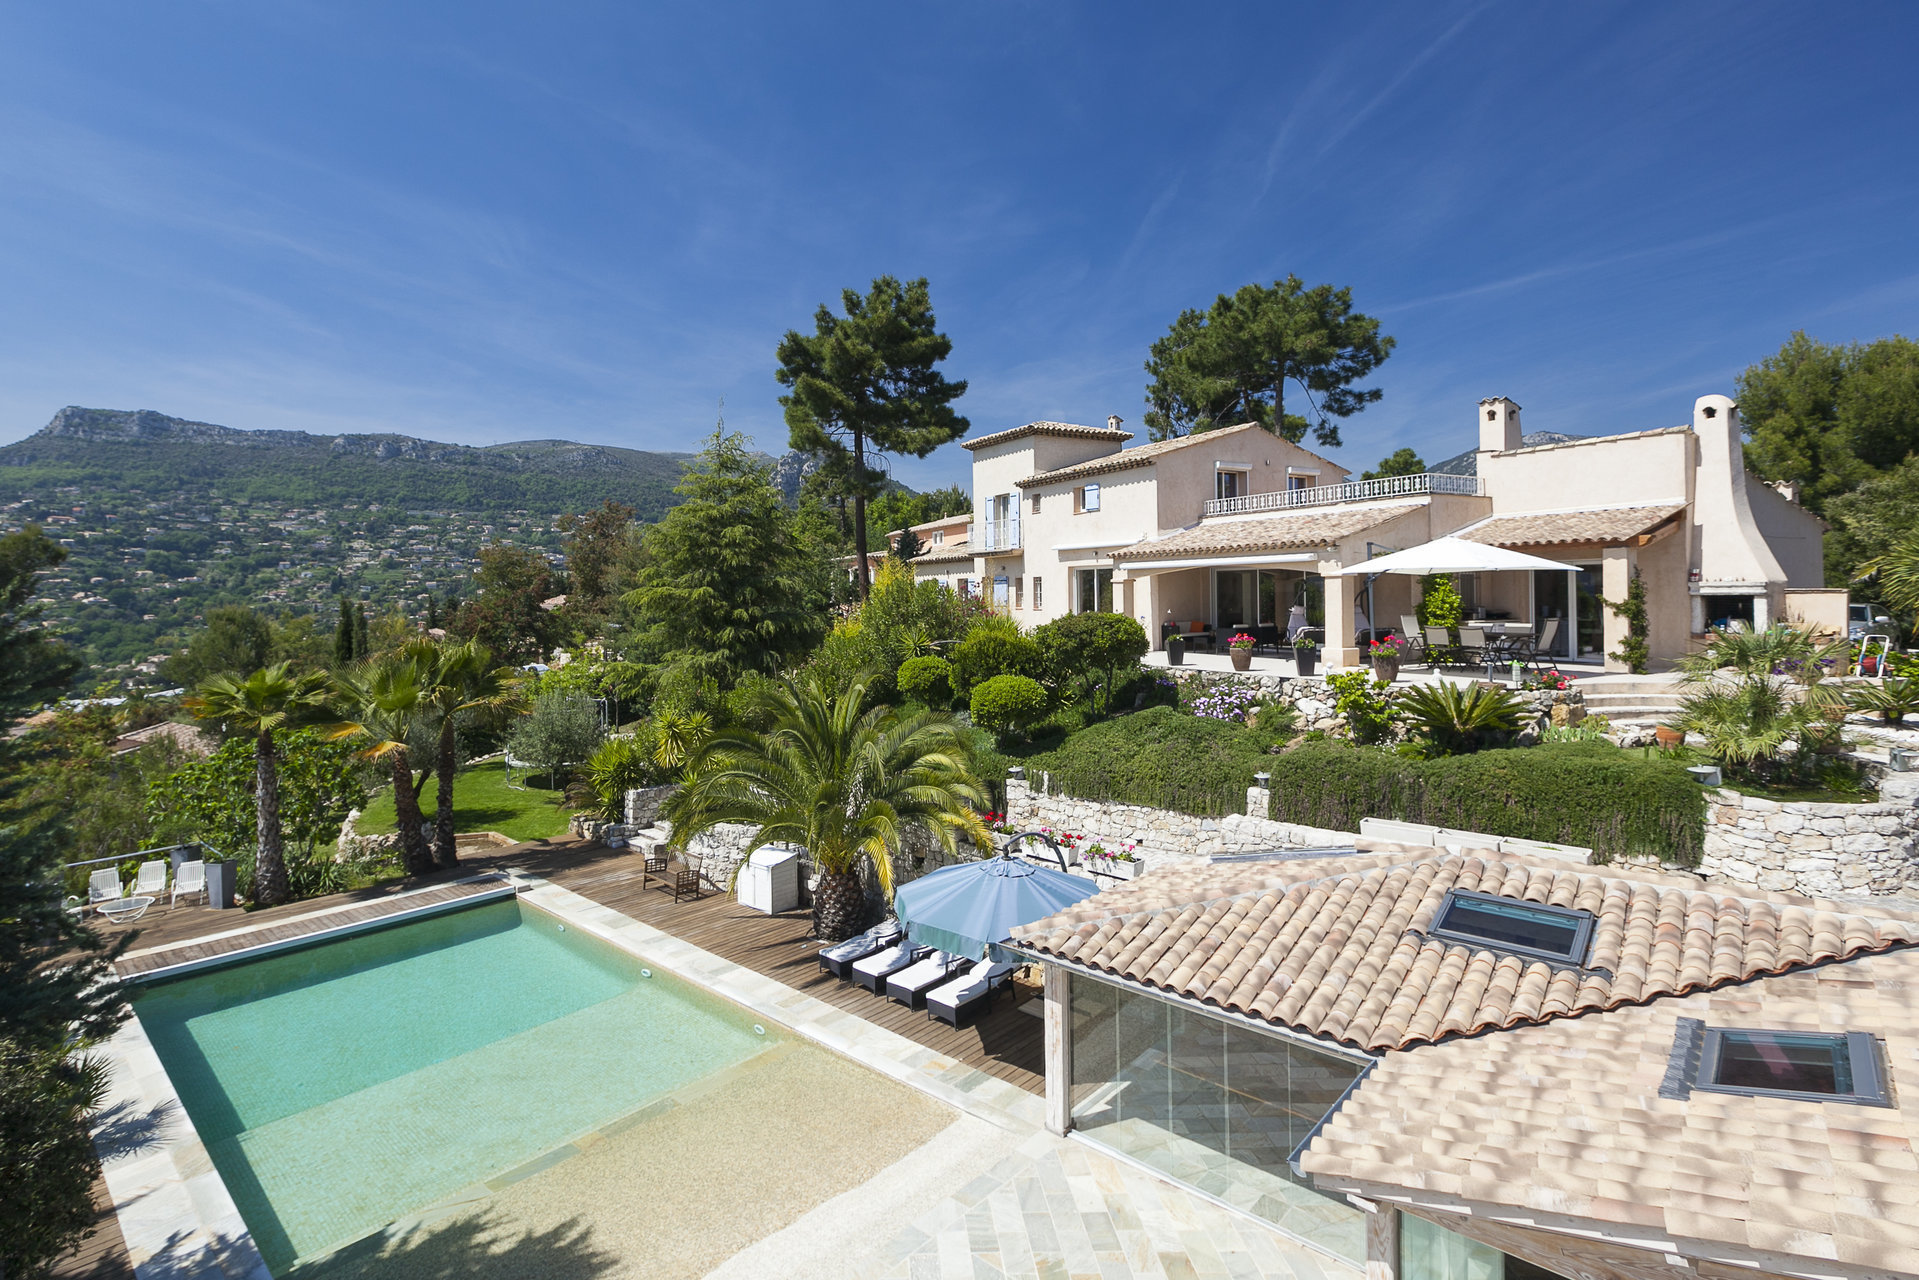 ALPES MARITIMES (06) -  VENCE -  VENTE PROPRIETE VILLA 6 PIECES +2 DEPENDANCES +PISCINE